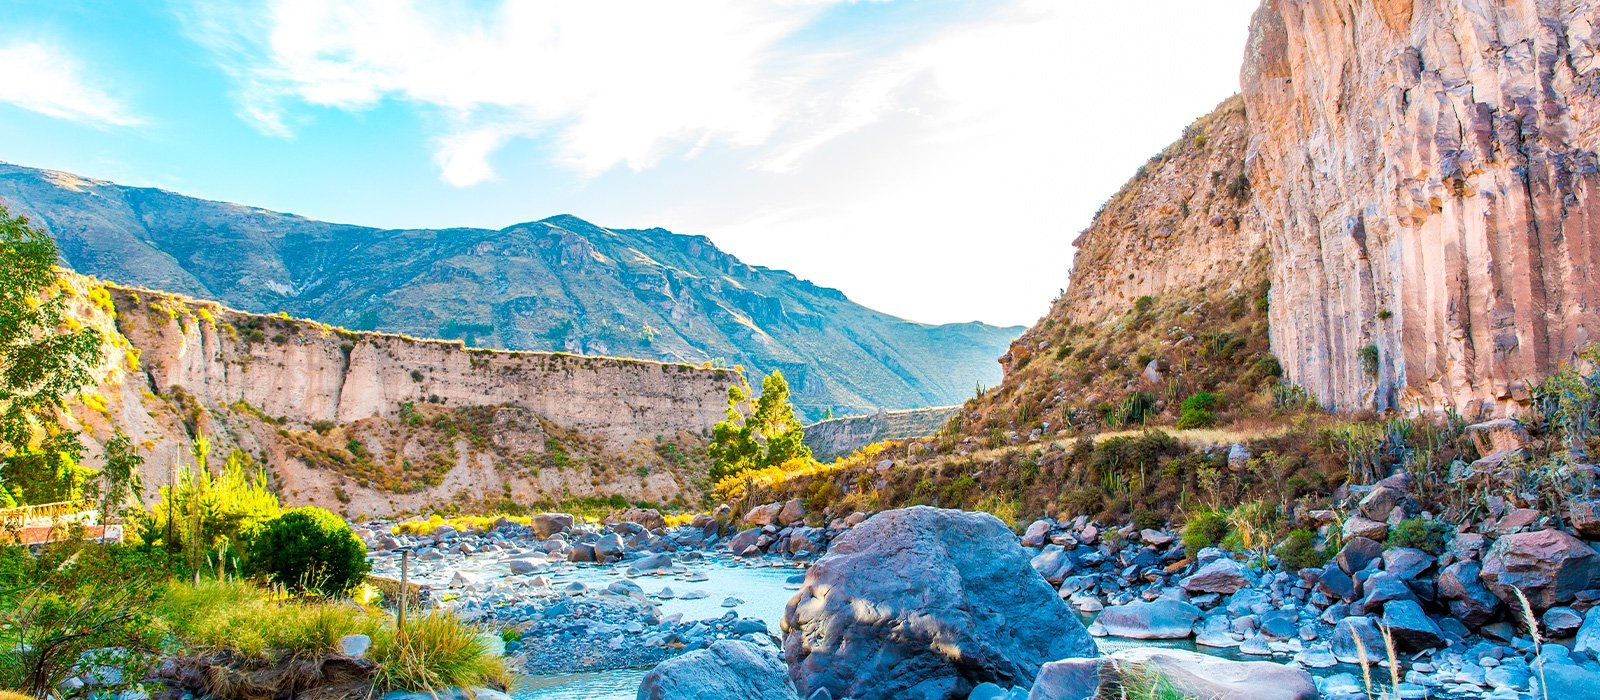 Colca Canyon & Andean Culture